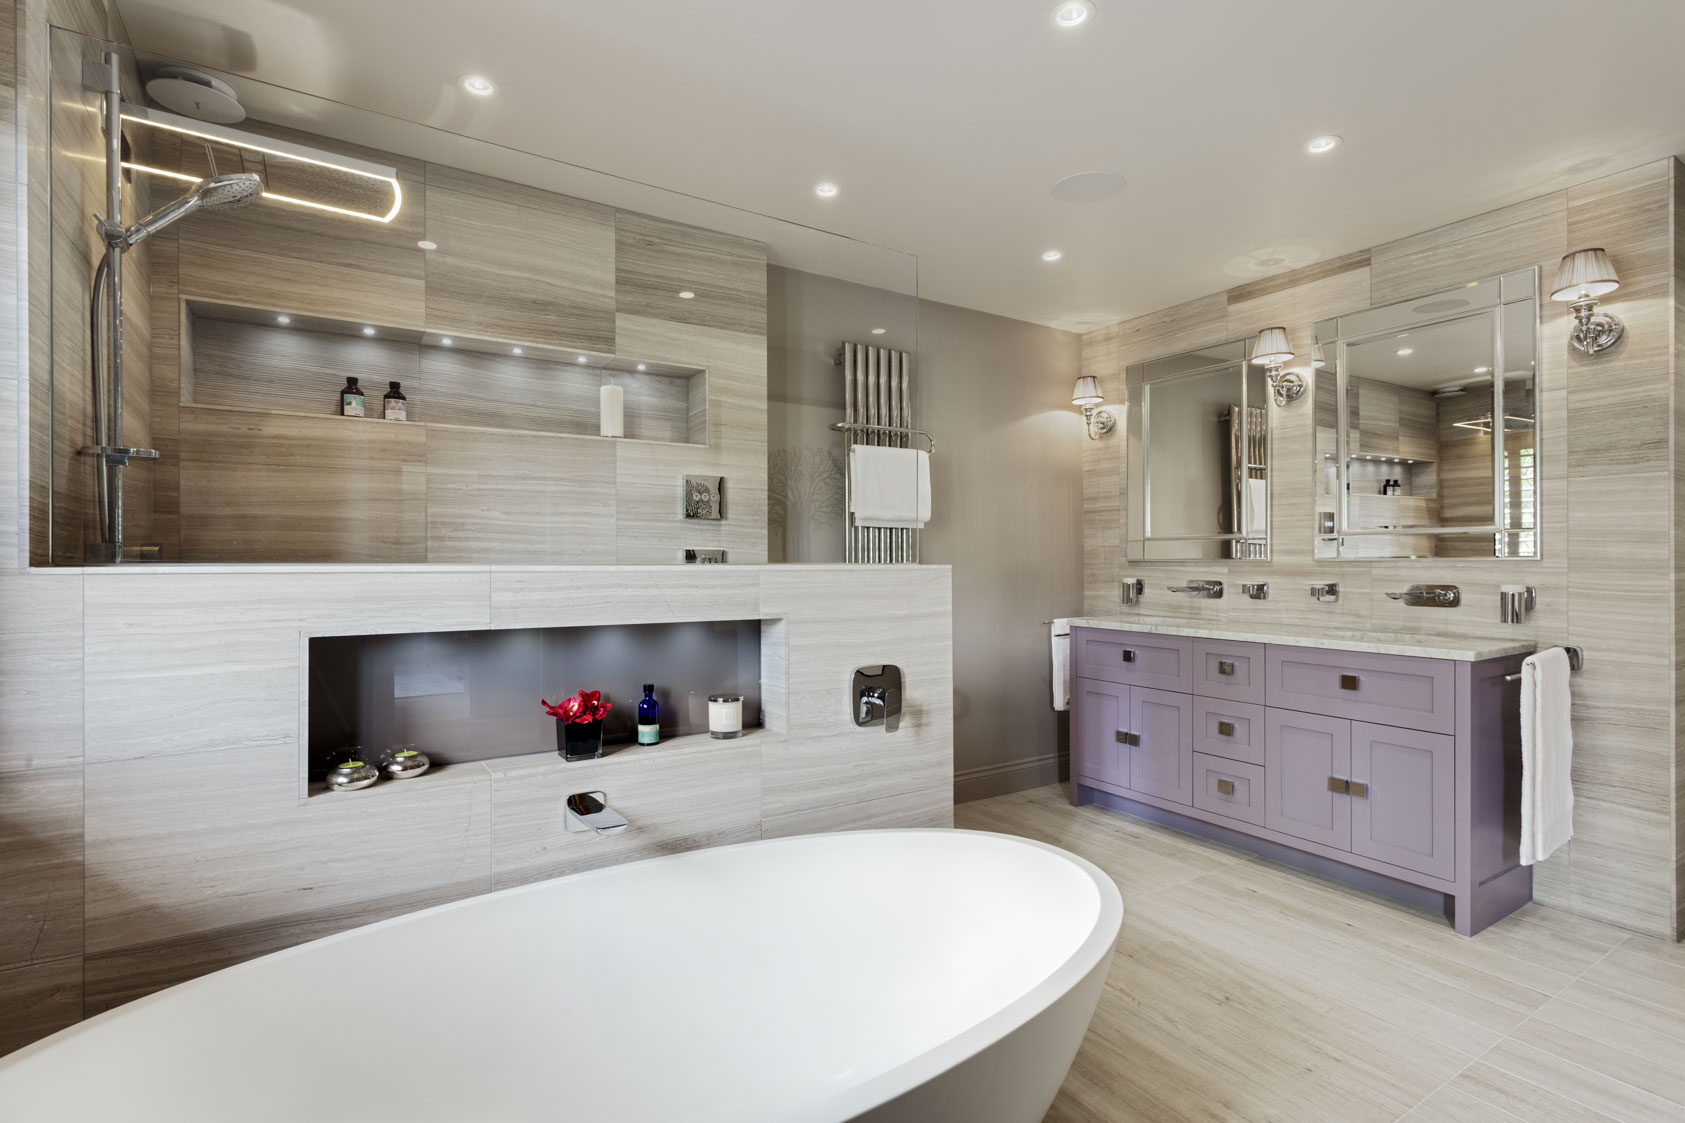 The brighton bathroom company luxury bathroom design in for Small bathroom design 2m x 2m